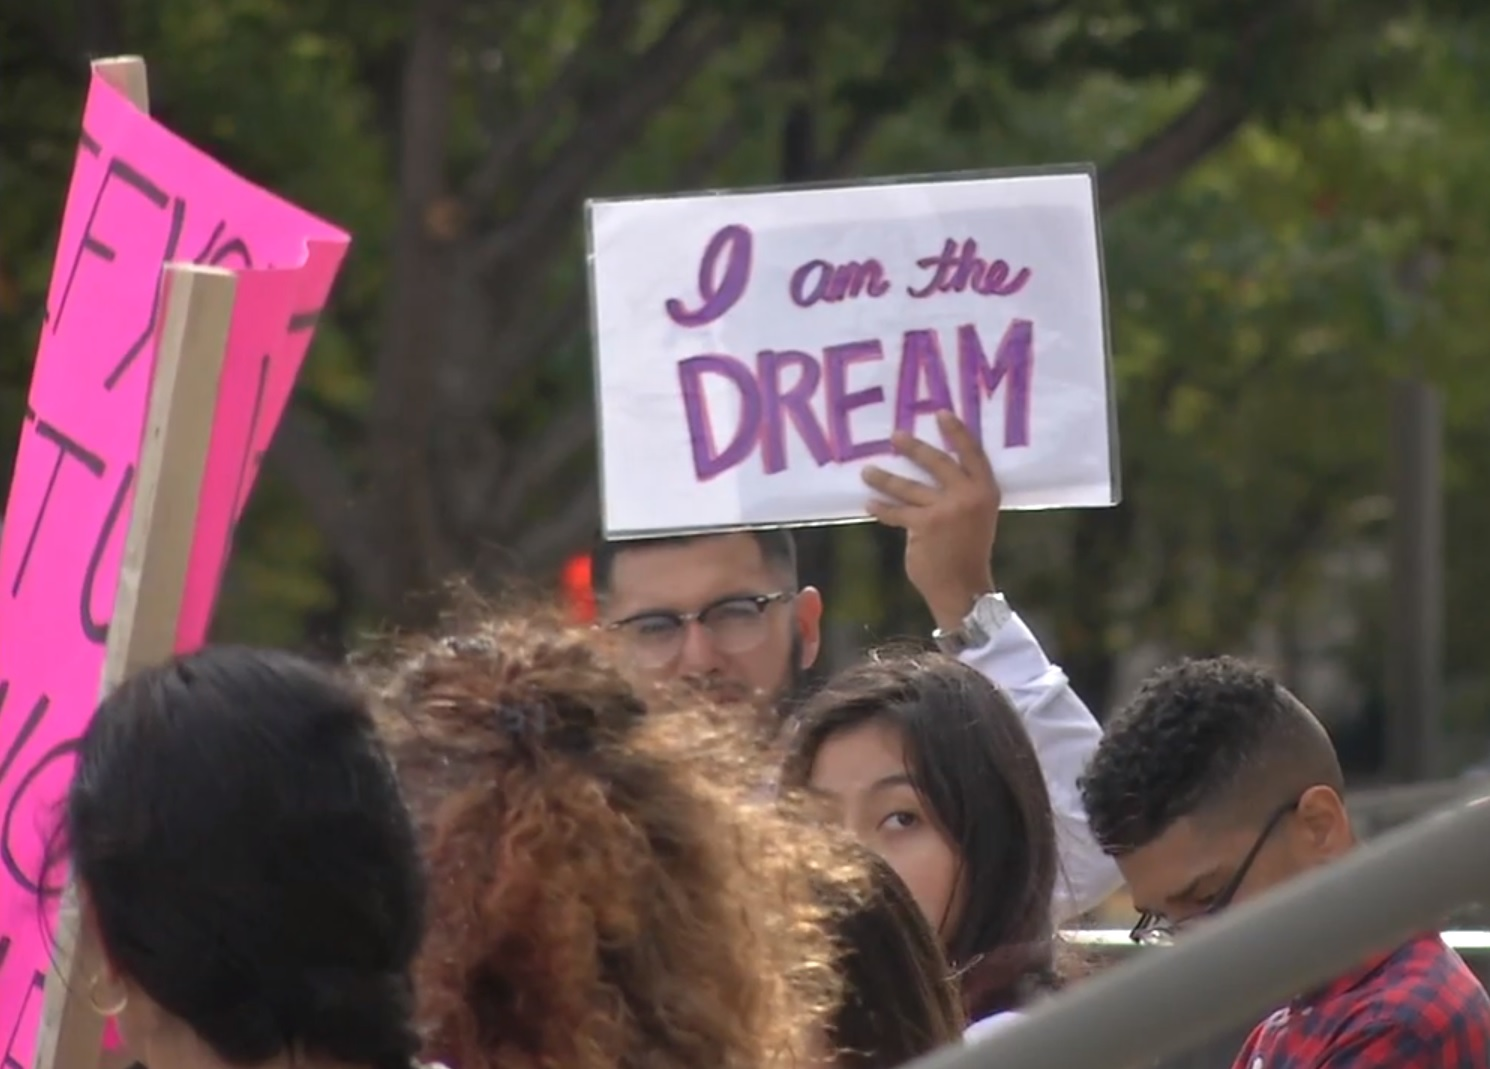 Activists rally in Nashville, Tennessee to defend the DACA program and dreamers. (Image: WZTV)<p></p>